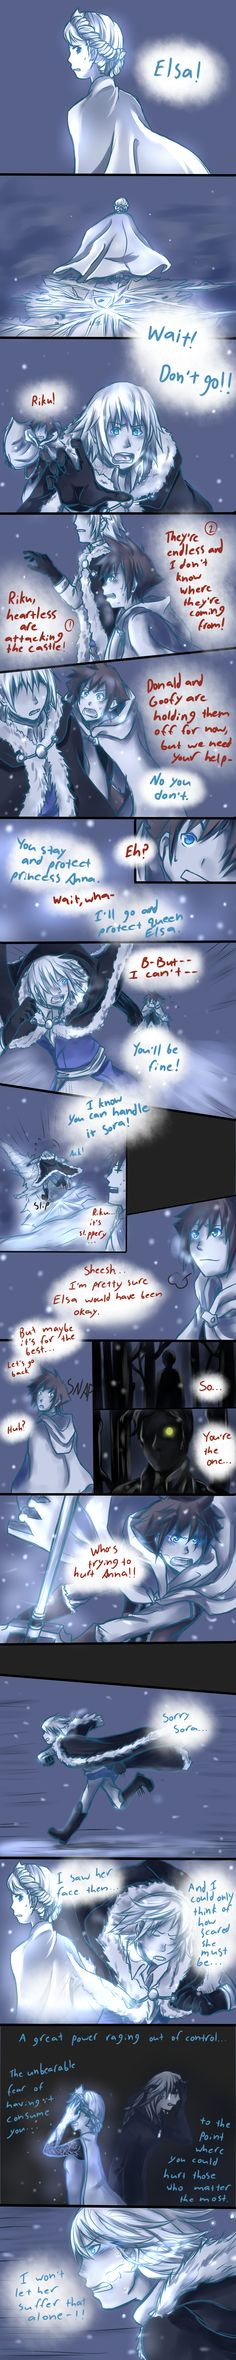 Frozen/KH: To Protect by Medli45.deviantart.com on @deviantART << Awesome comic. I seriously hope to see this in Kingdom Hearts III.